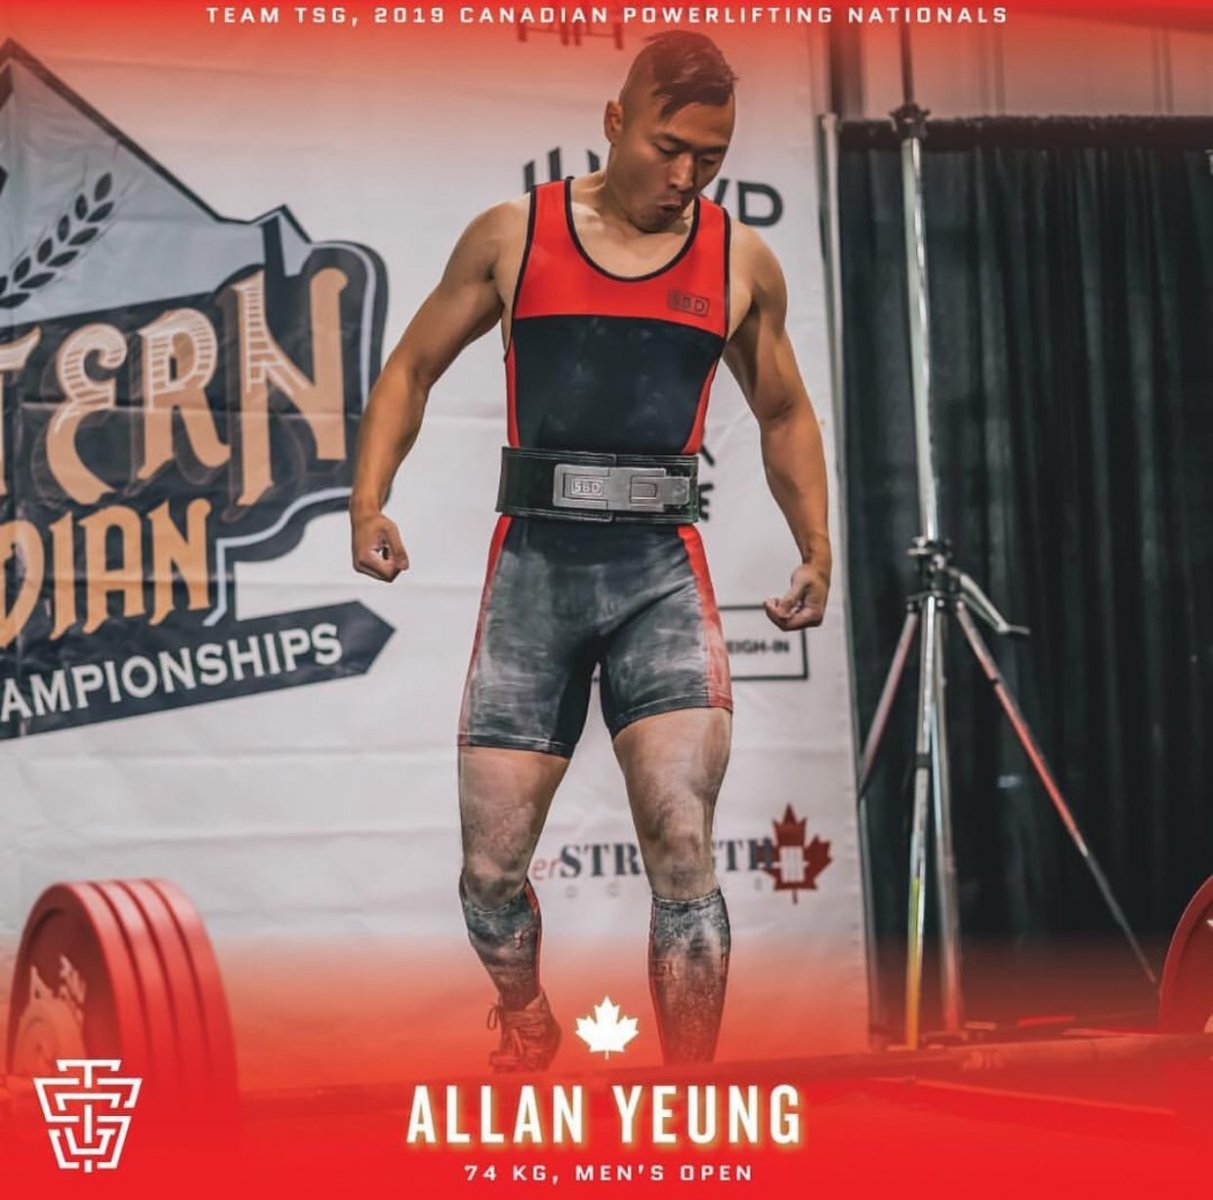 CPU Nationals 2019 Allan Yeung